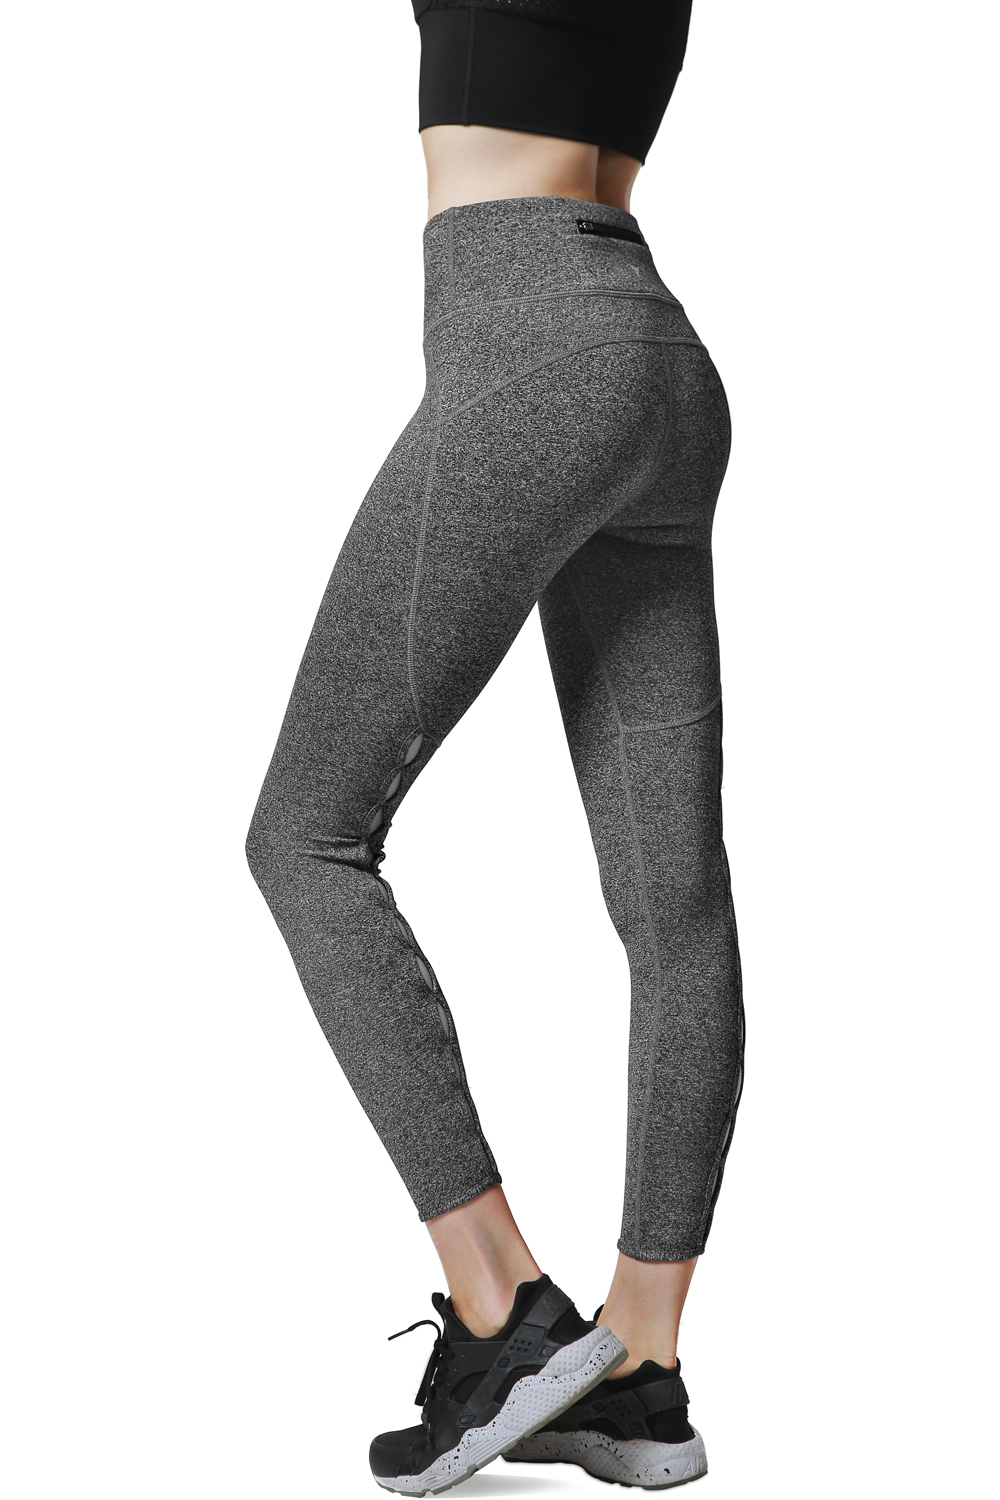 bd5afdc473d57 Womens Sexy Yoga Pants Workout Running Stretch Jogging Leggings   eBay